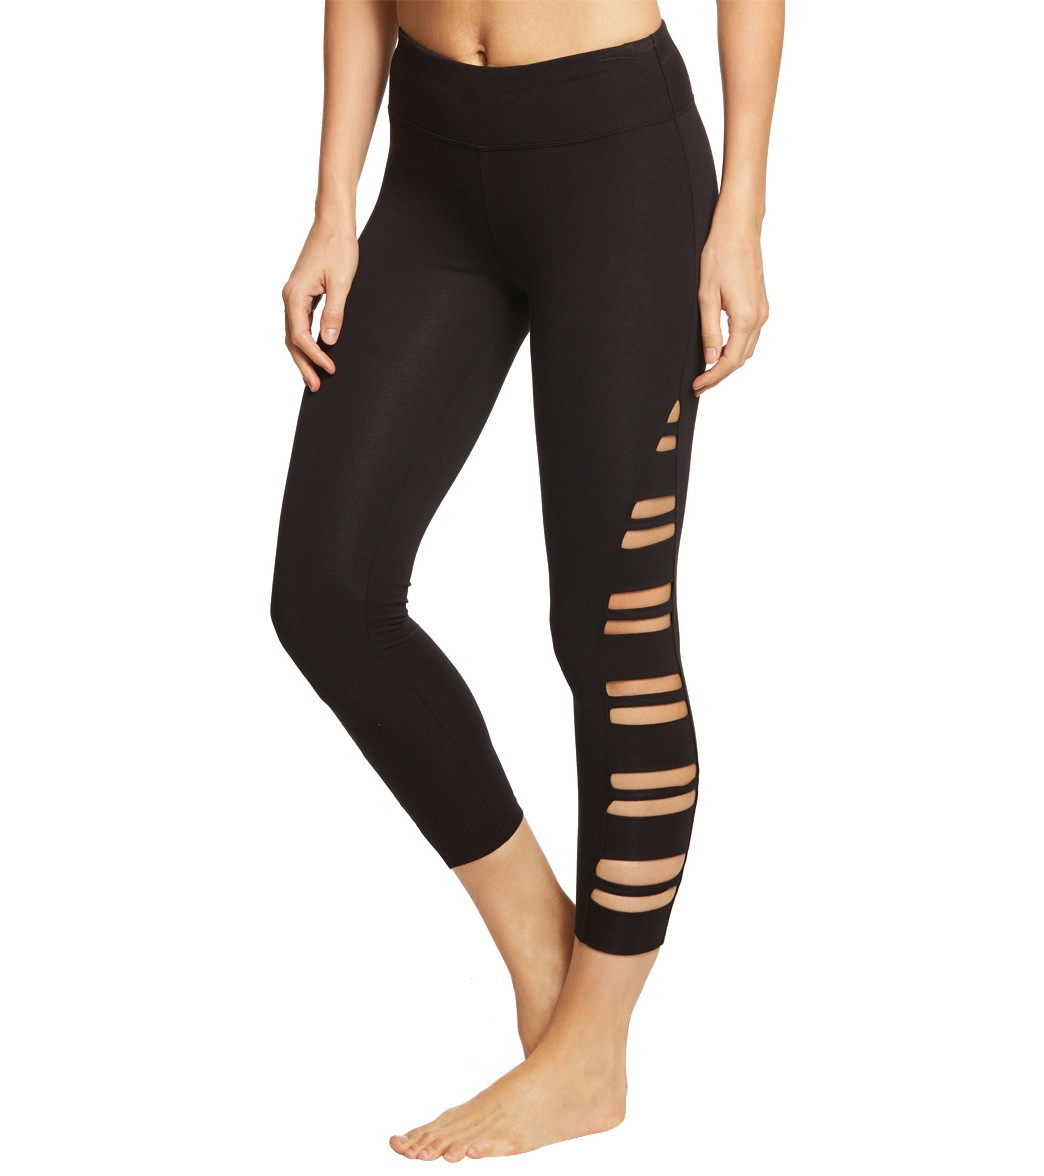 75a952eb61db34 Betsey Johnson Performance Side Band Cutout 7/8 Yoga Leggings at  YogaOutlet.com - Free Shipping